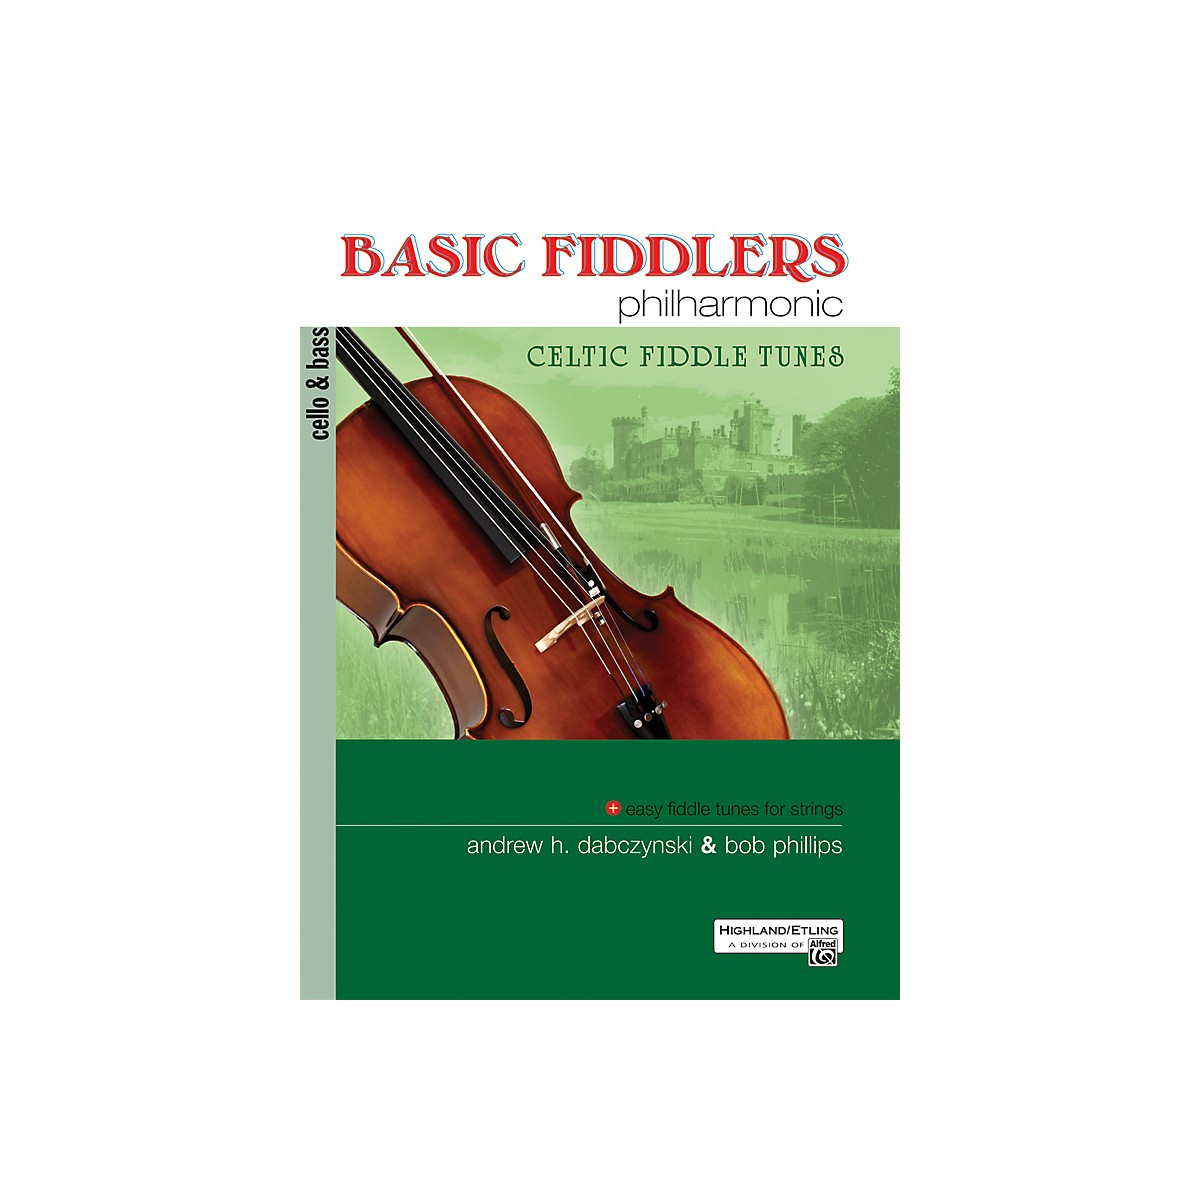 Alfred Basic Fiddlers Philharmonic Celtic Fiddle Tunes Cello/Bass Book